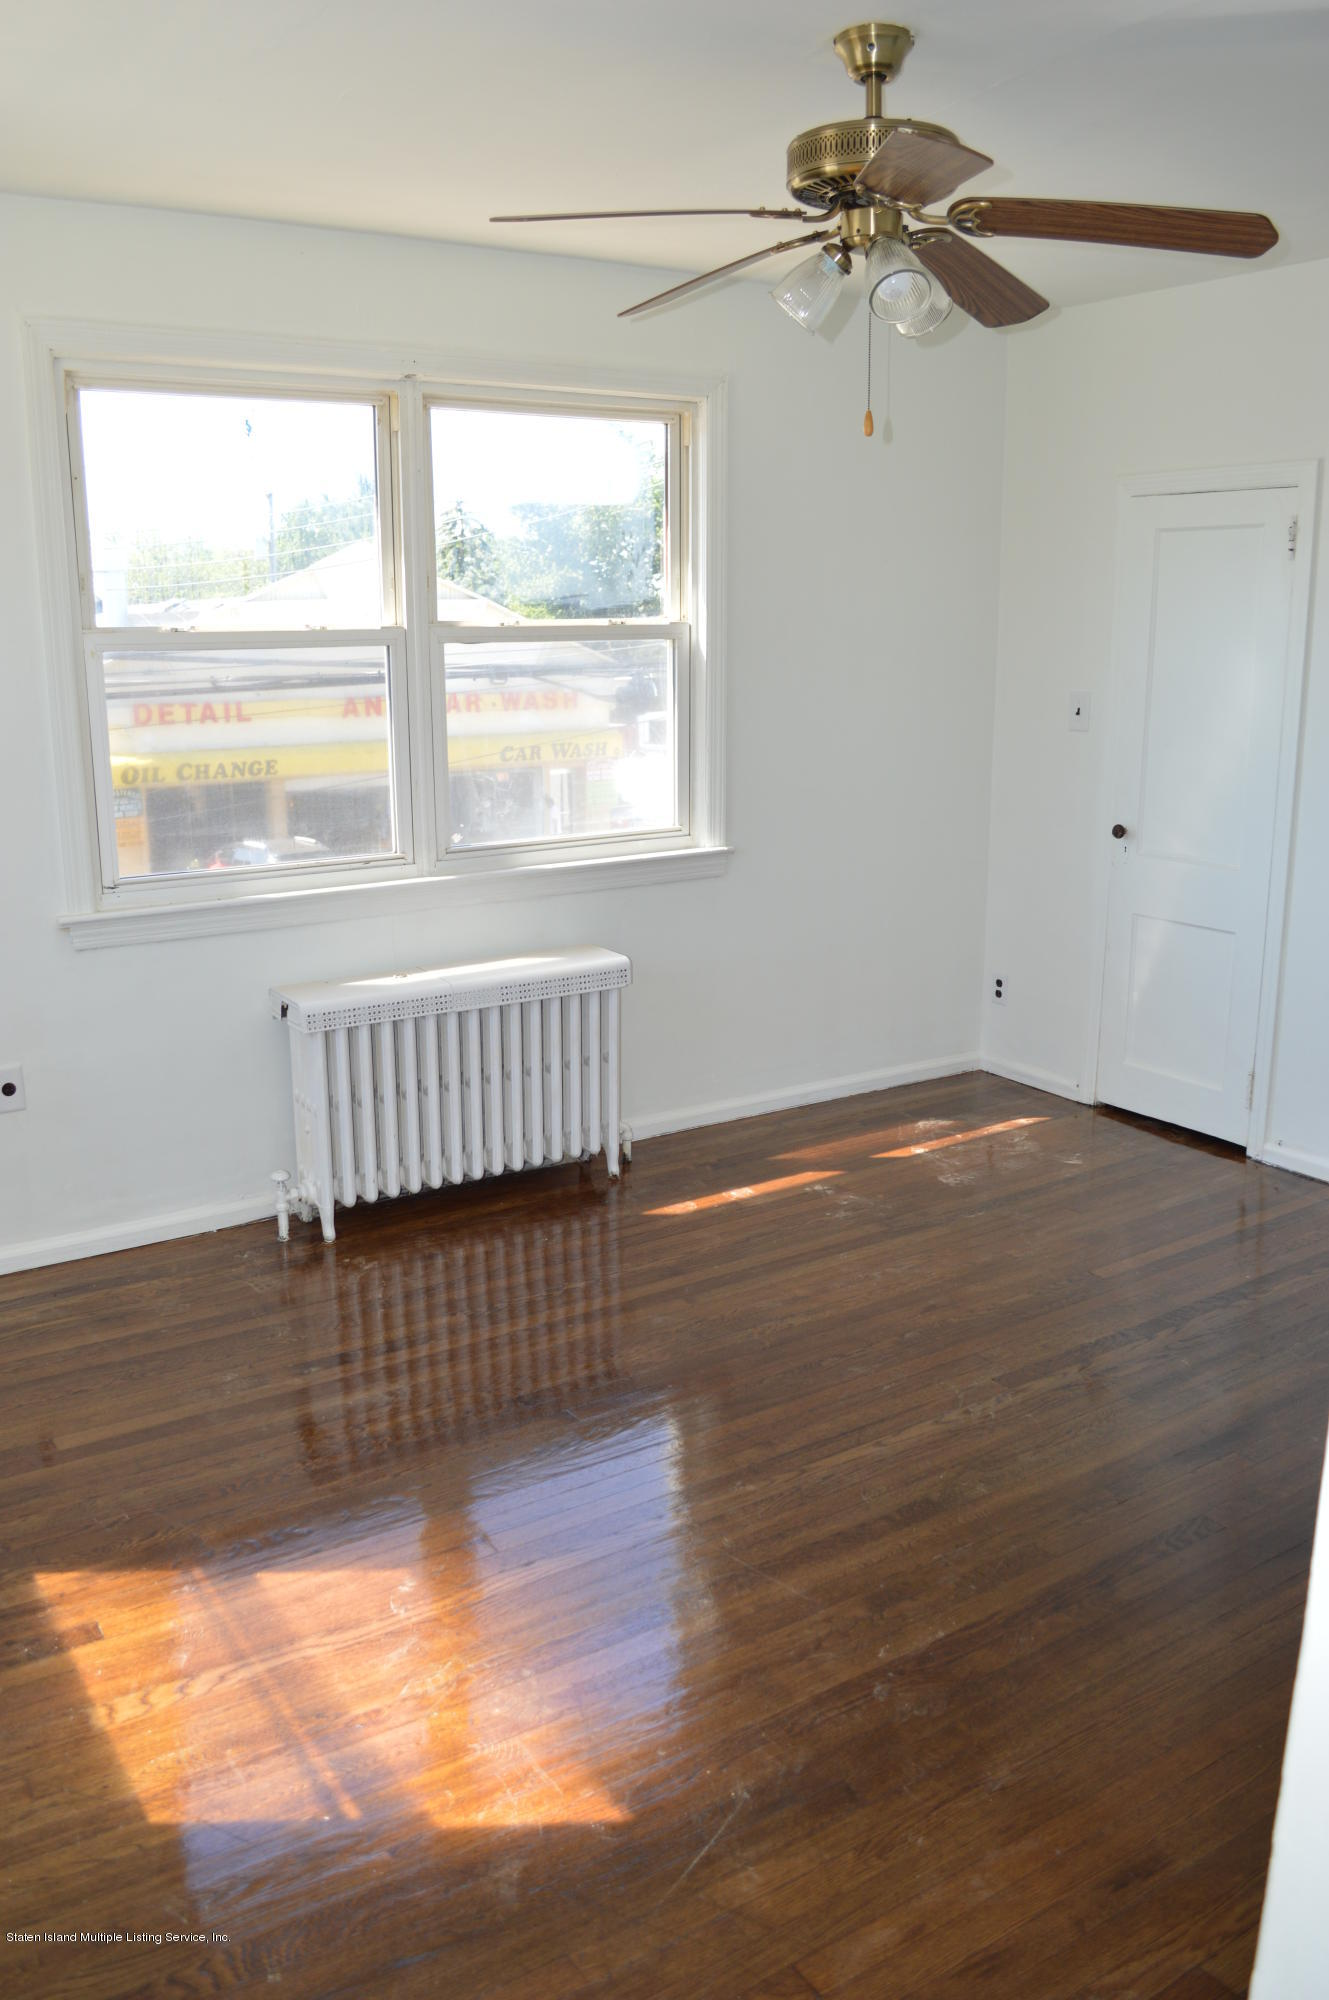 3115 Victory Boulevard,Staten Island,New York,10314,United States,2 Bedrooms Bedrooms,5 Rooms Rooms,1 BathroomBathrooms,Res-Rental,Victory,1130611